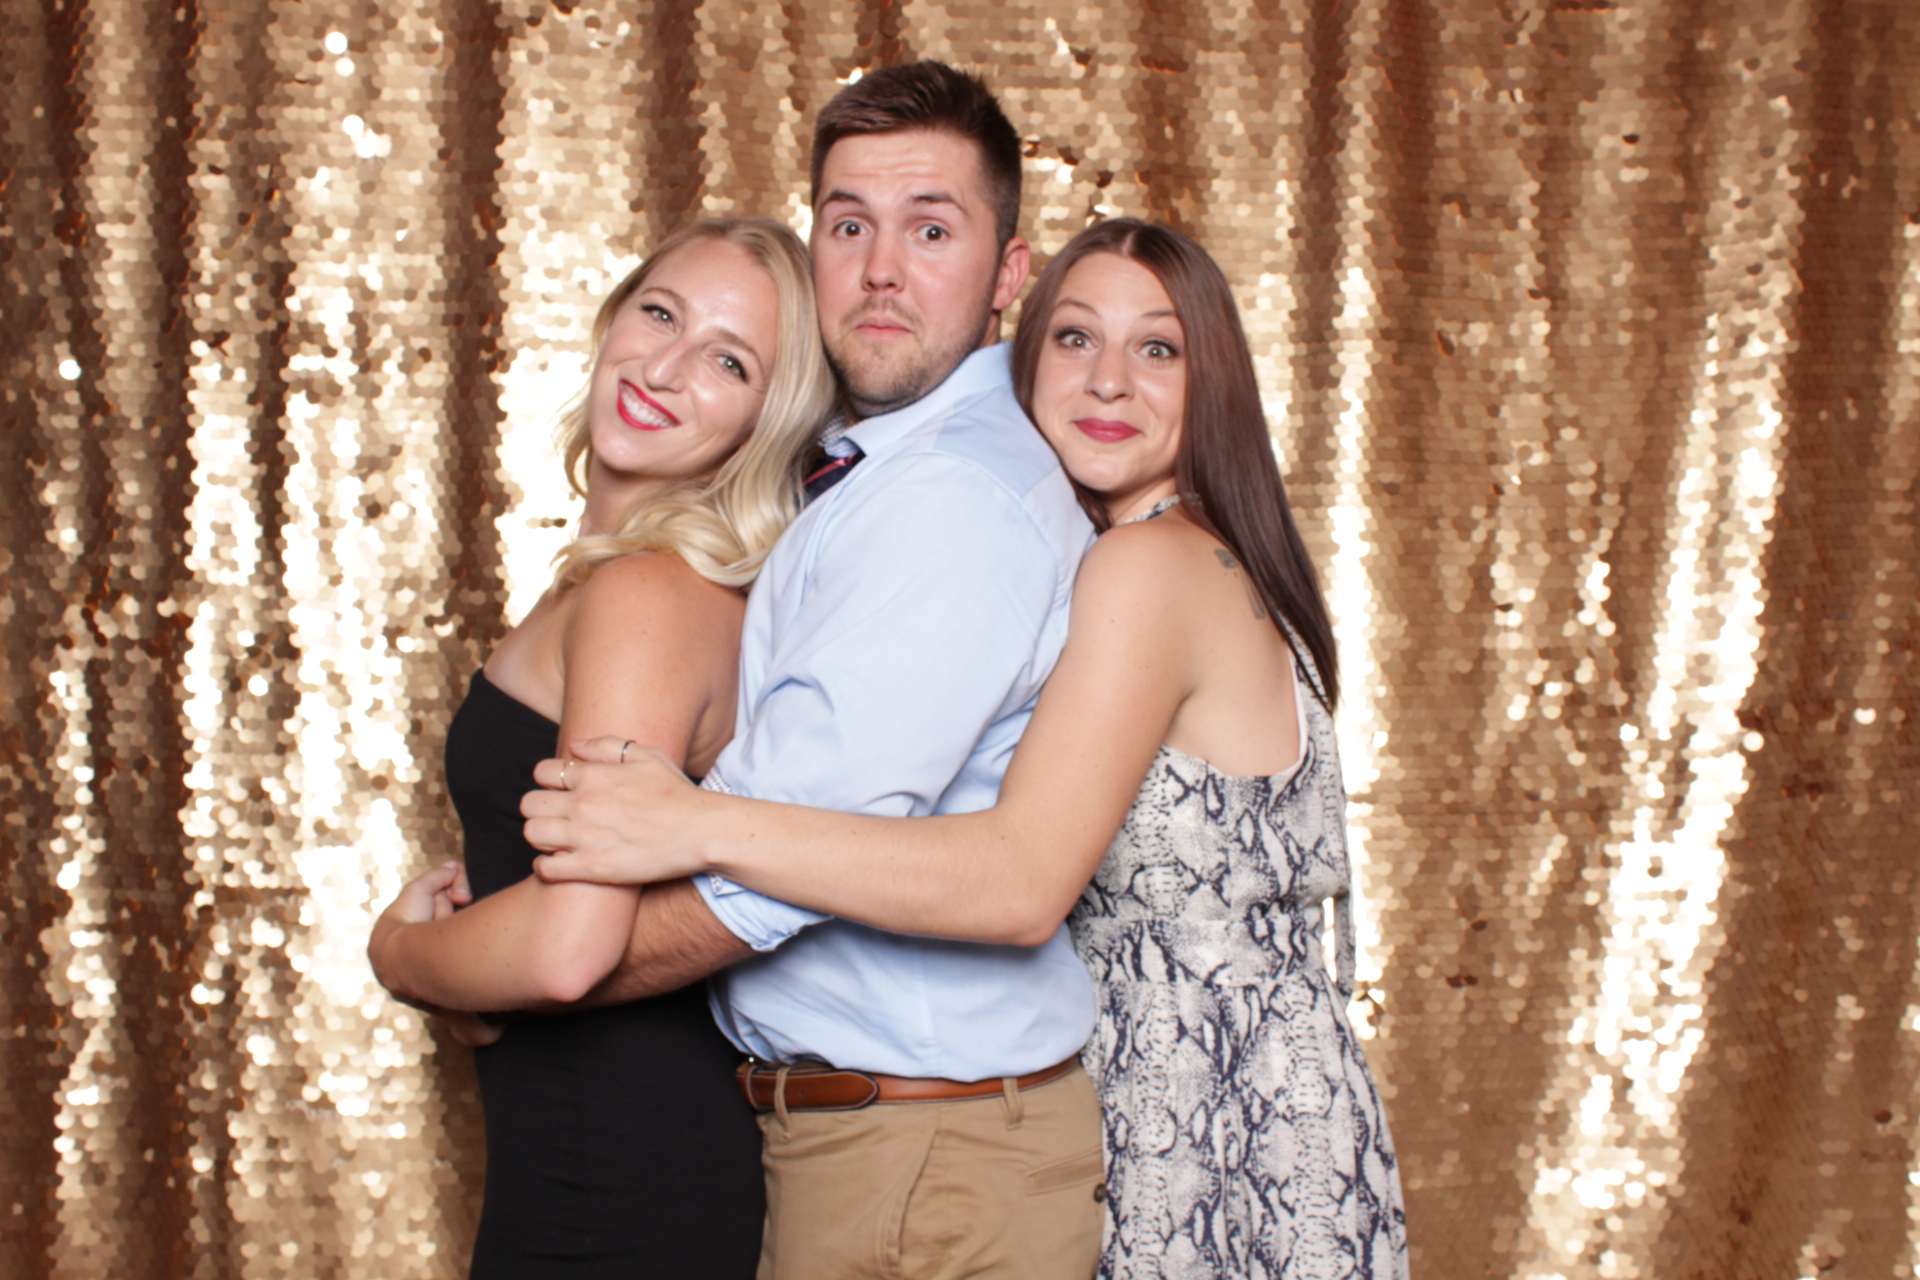 Minneapolis_St Paul_Photo_Booths_Weddings (4).jpg